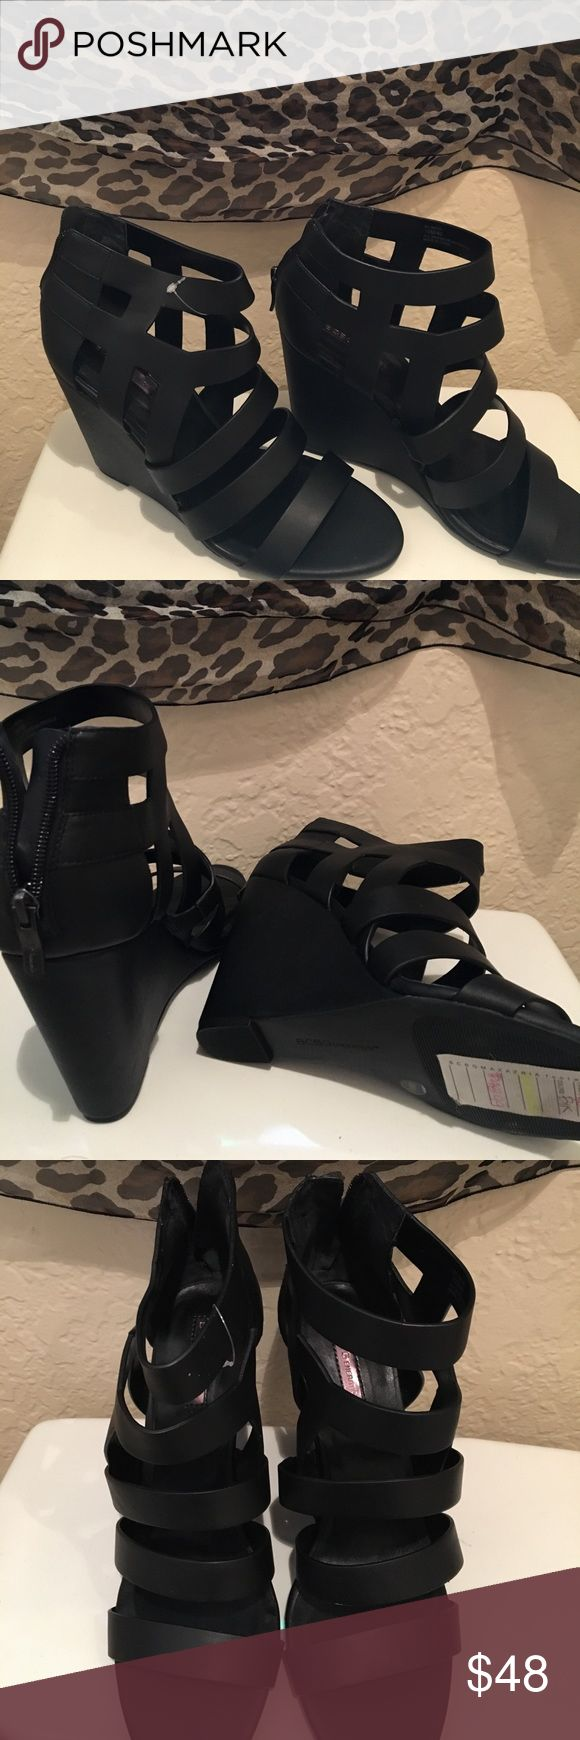 Blk ladies wedge sandals BCBG, new w/tag Beautiful blk leather, strappy sandals, wedge style. Slide in and zipper back closer. Brand new, never worn; received as a gift, wrong size 😩 BCBG Generation 👡 BCBGeneration Shoes Sandals